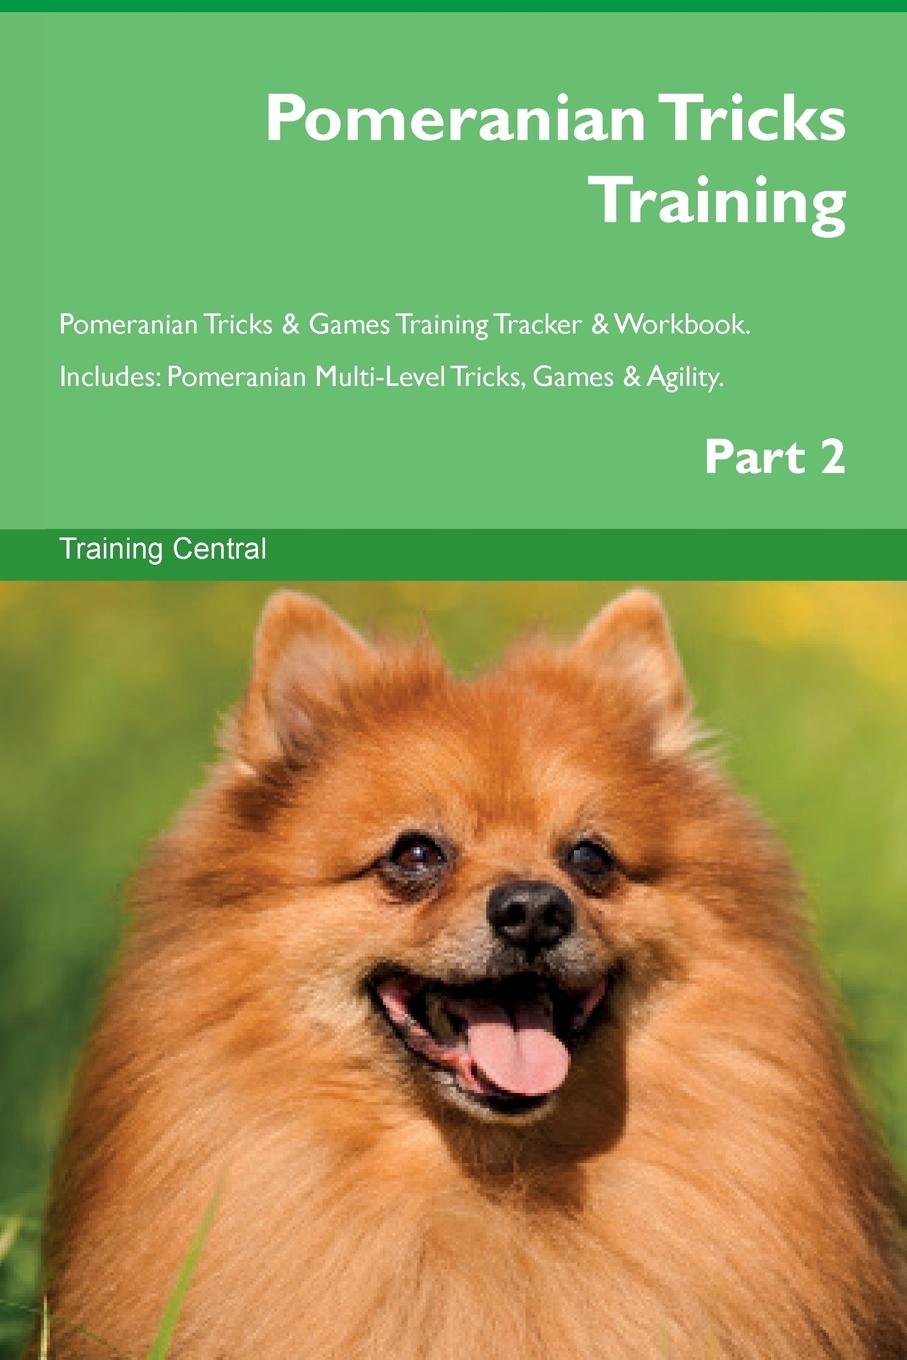 Training Central Pomeranian Tricks Training Pomeranian Tricks . Games Training Tracker . Workbook. Includes. Pomeranian Multi-Level Tricks, Games . Agility. Part 2 this book loves you